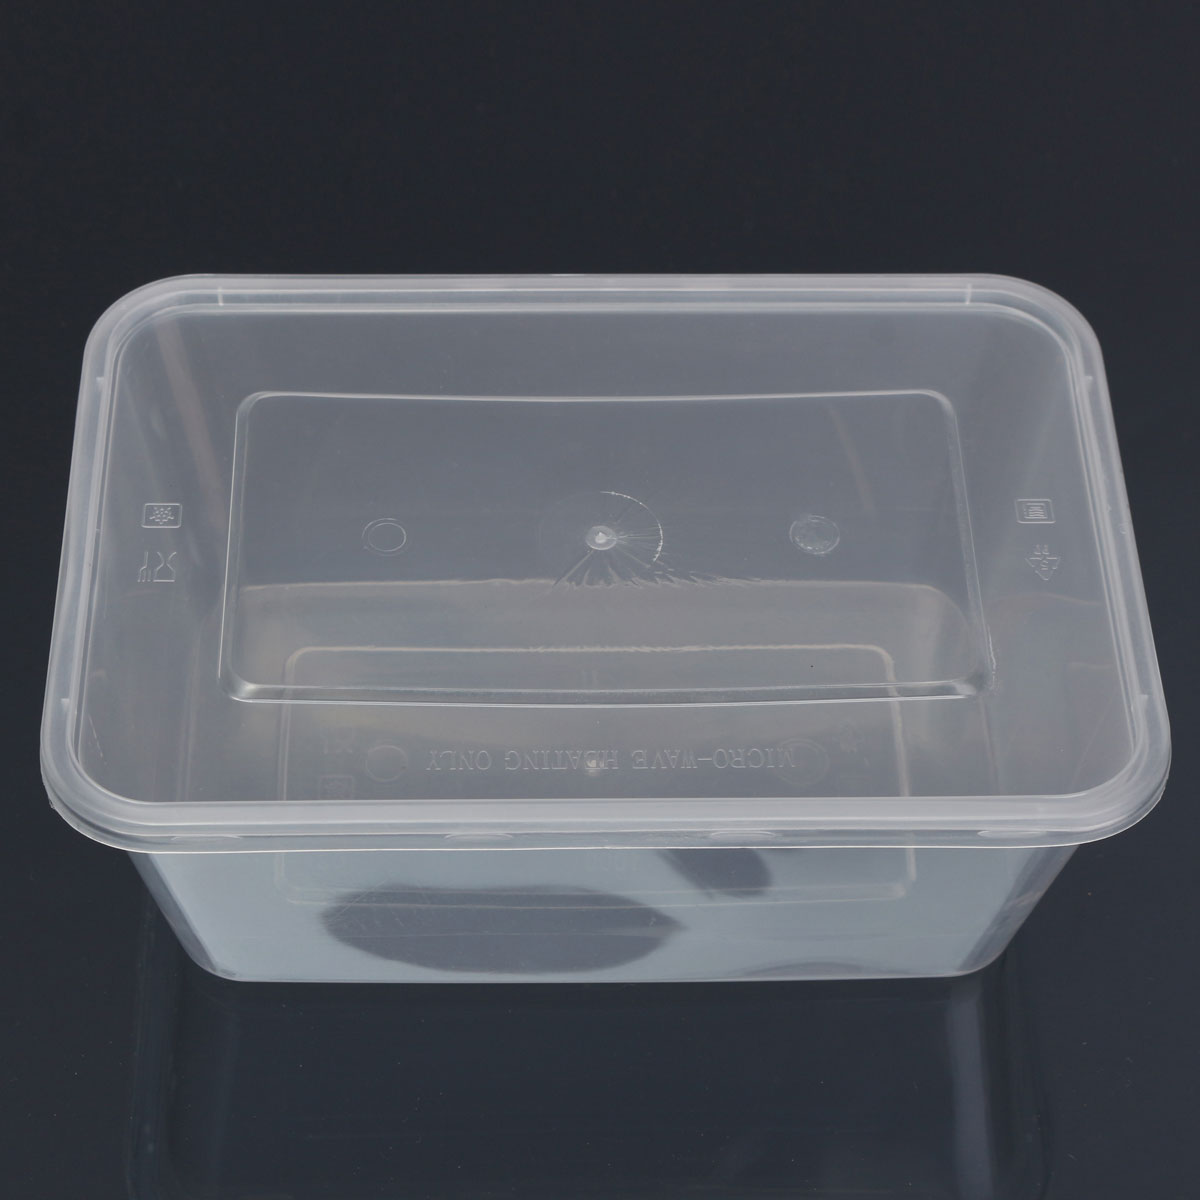 Plastic Containers With Lids 10x Plastic Containers Tubs Clear With Lids Microwave Food